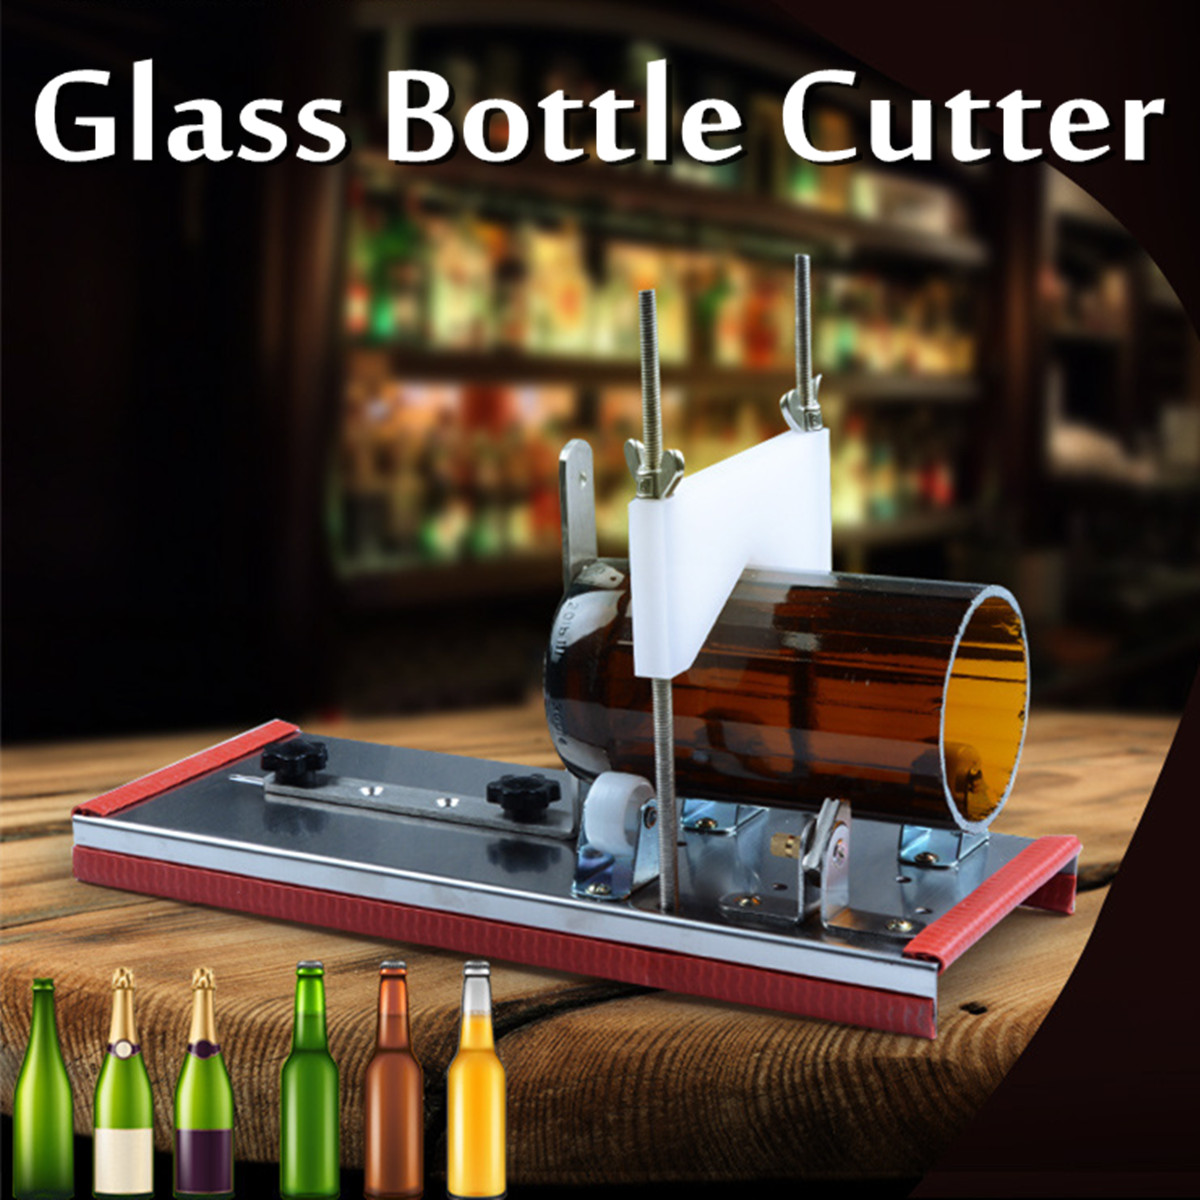 Beer Wine Jar Accurate Cutting Machine 2-10mm DIY Recycle Cutting Tool Kit Glass Bottle Cutter Stainless Steel Smoothly Cutting diy carbon steel oval frame cutting dies